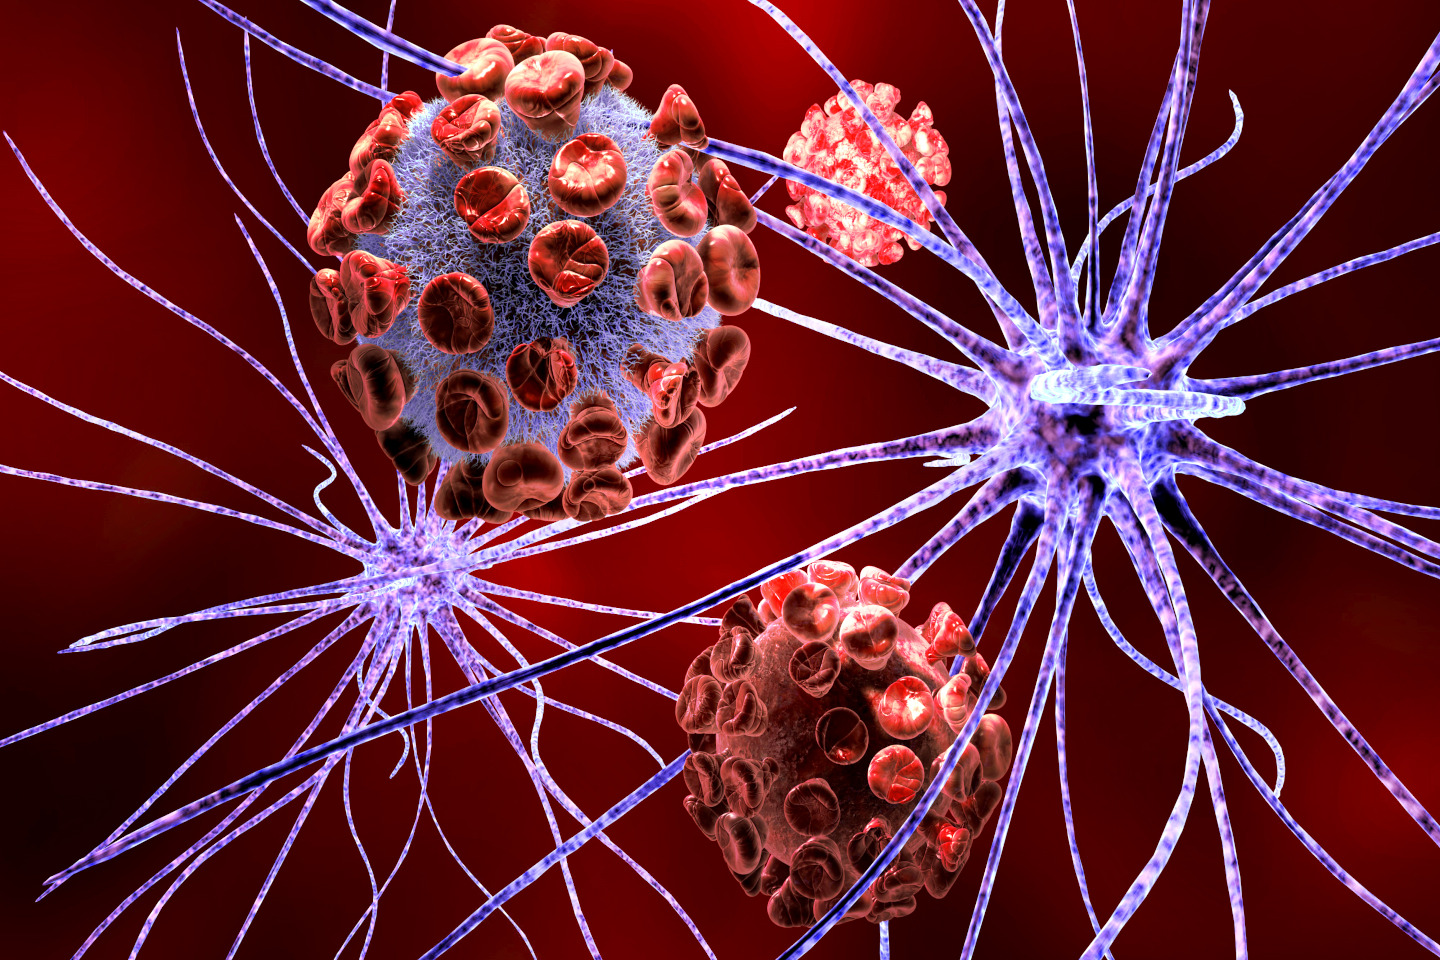 Nerve cell attacked by virus, neurological disorder and genetic disease like parkinson disease, Huntington's disease, muscular dystrophy, Alzheimer's disease, multiple sclerosis, brain tumors.